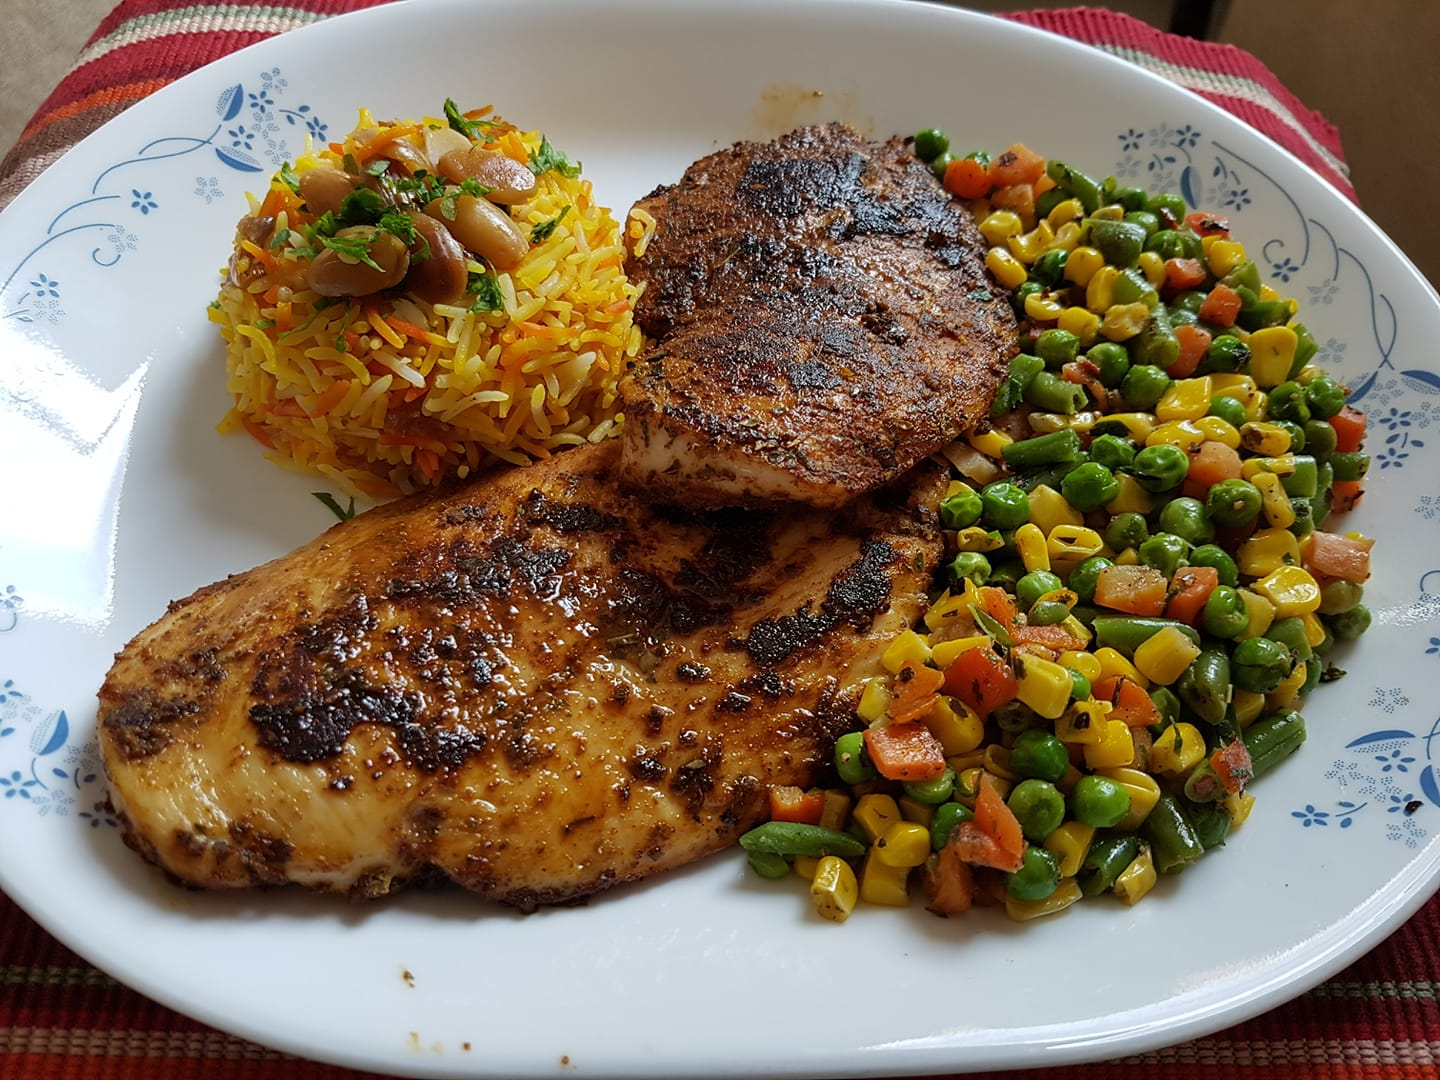 Baked chicken with sauteed vegetables and flavoured rice-by-Rasoirecipes